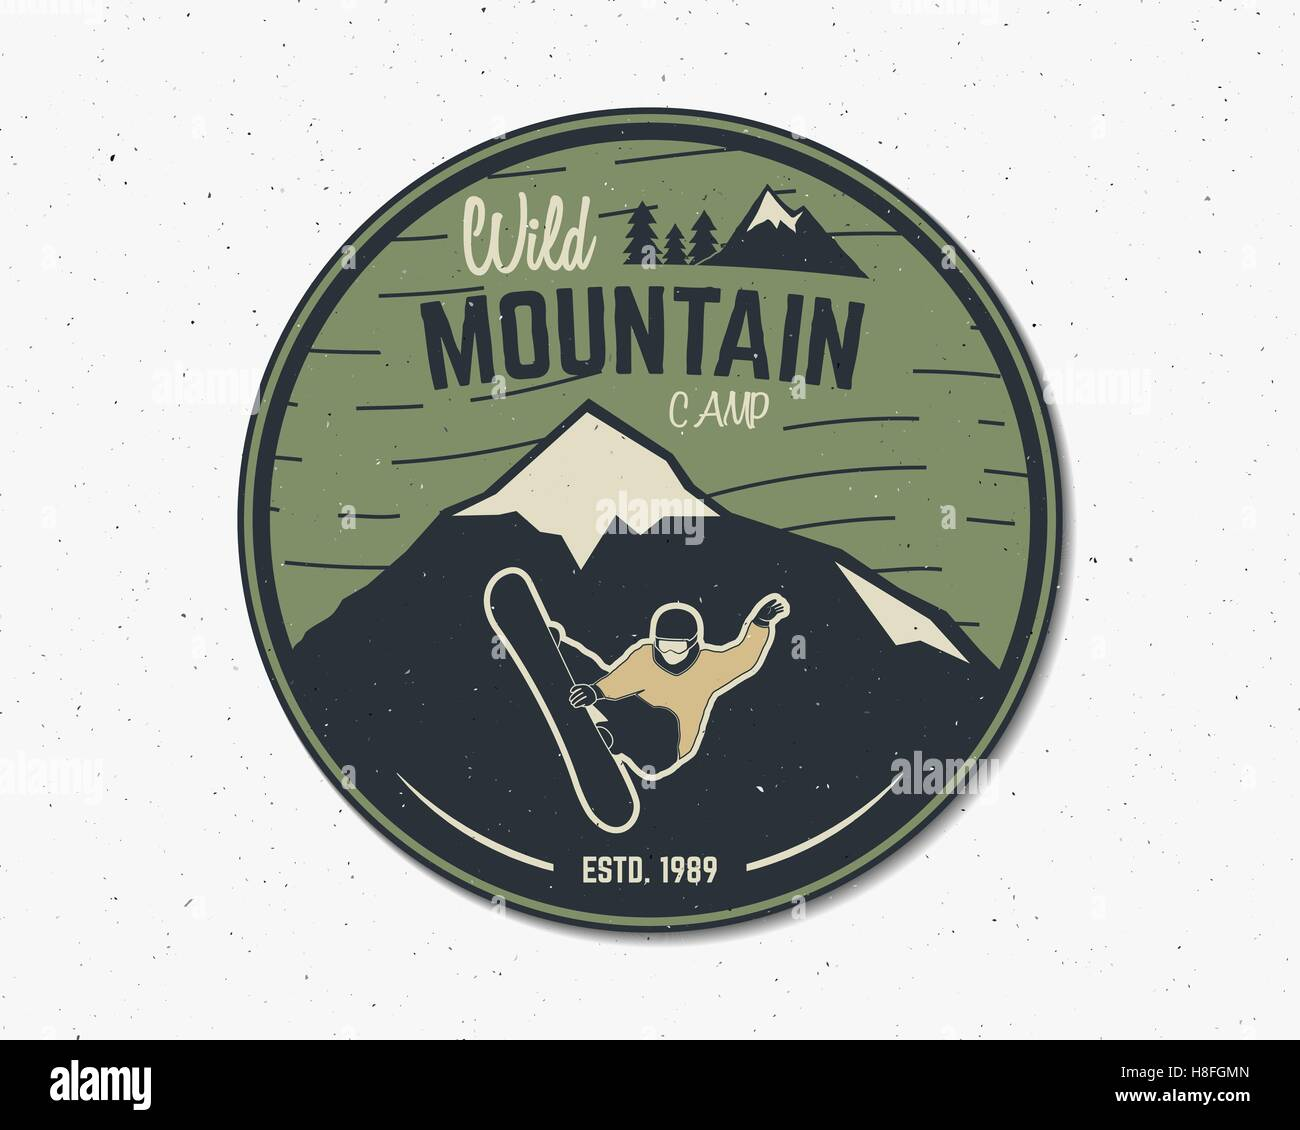 Mountain camp vintage explorer label  Outdoor adventure logo